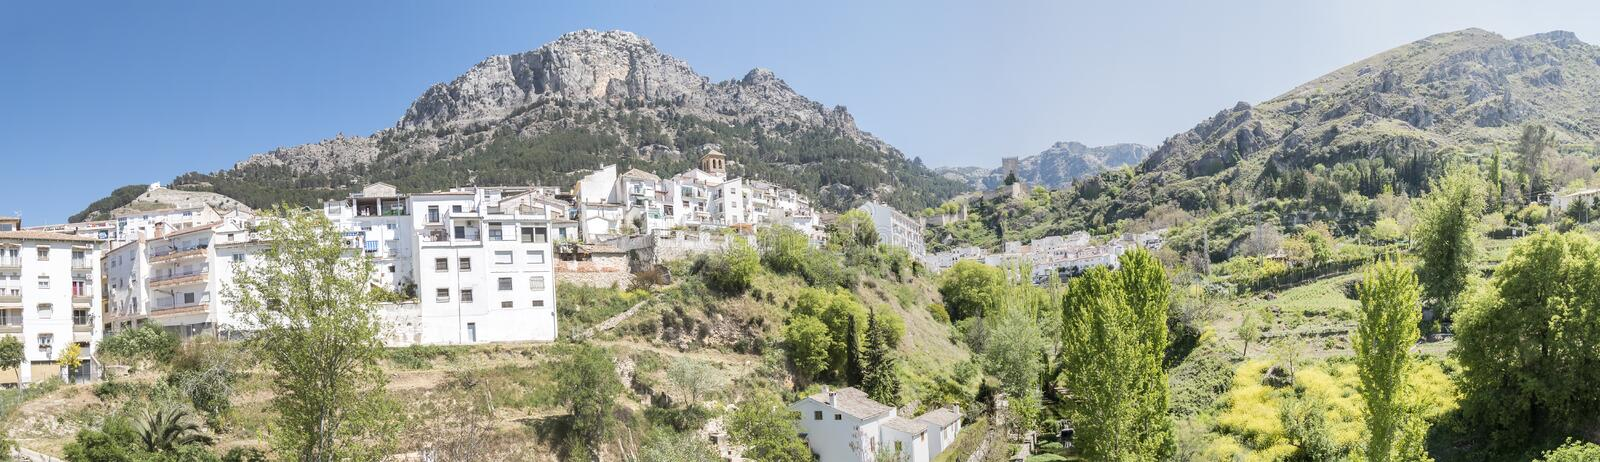 Panoramic view of Cazorla village, in the Sierra de Cazorla, Jaen, Spain royalty free stock photos